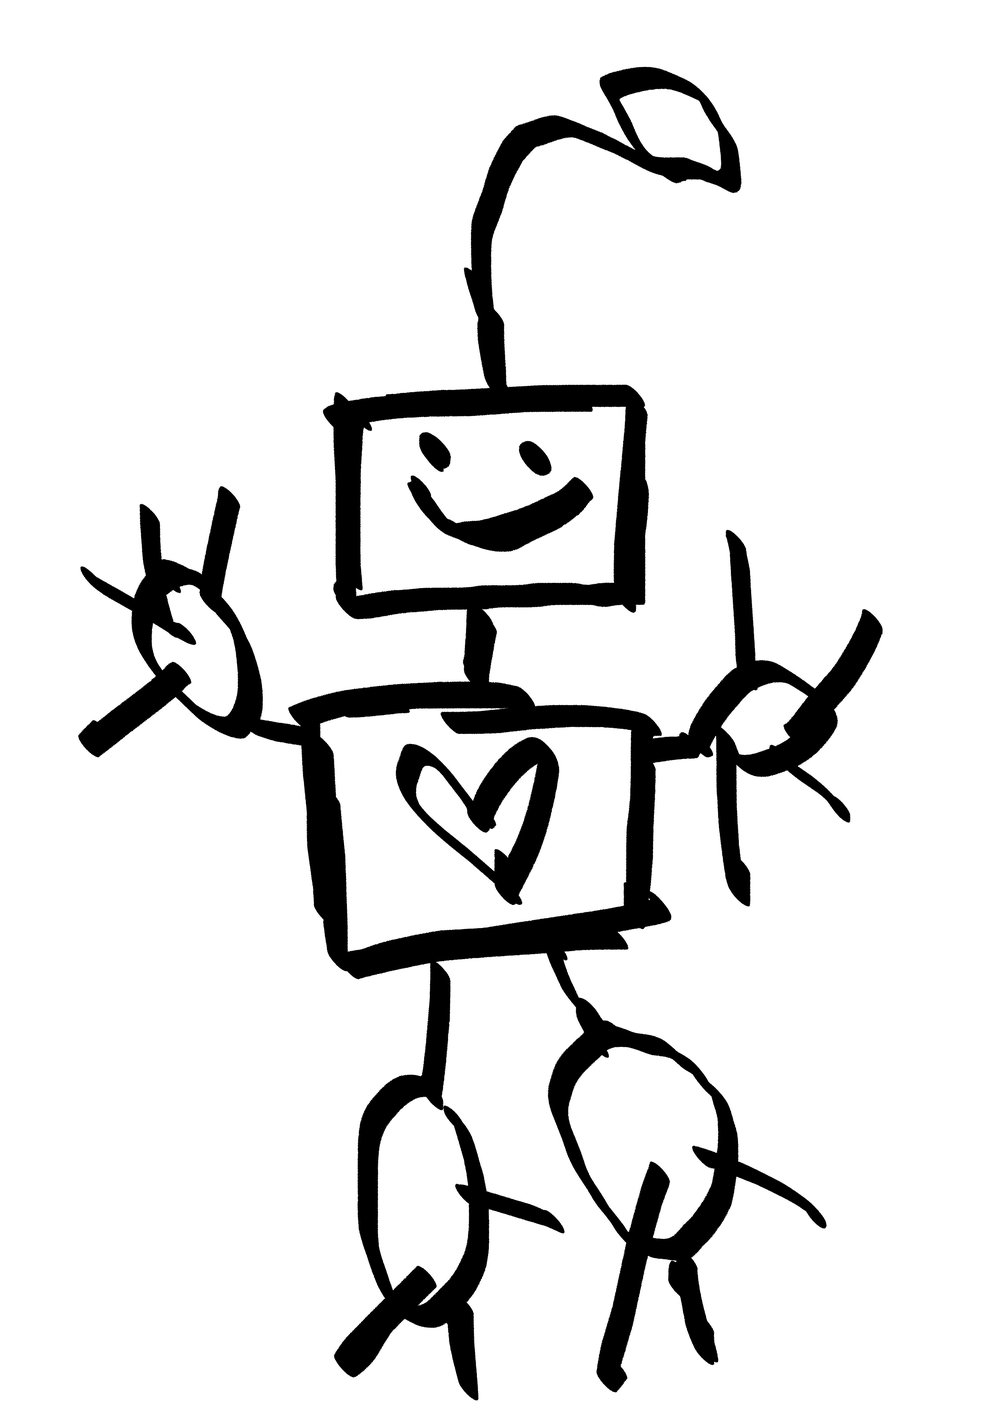 A happy robot seems a fitting little image - especially when it was drawn by one of my kids. I'm letting them take the lead...